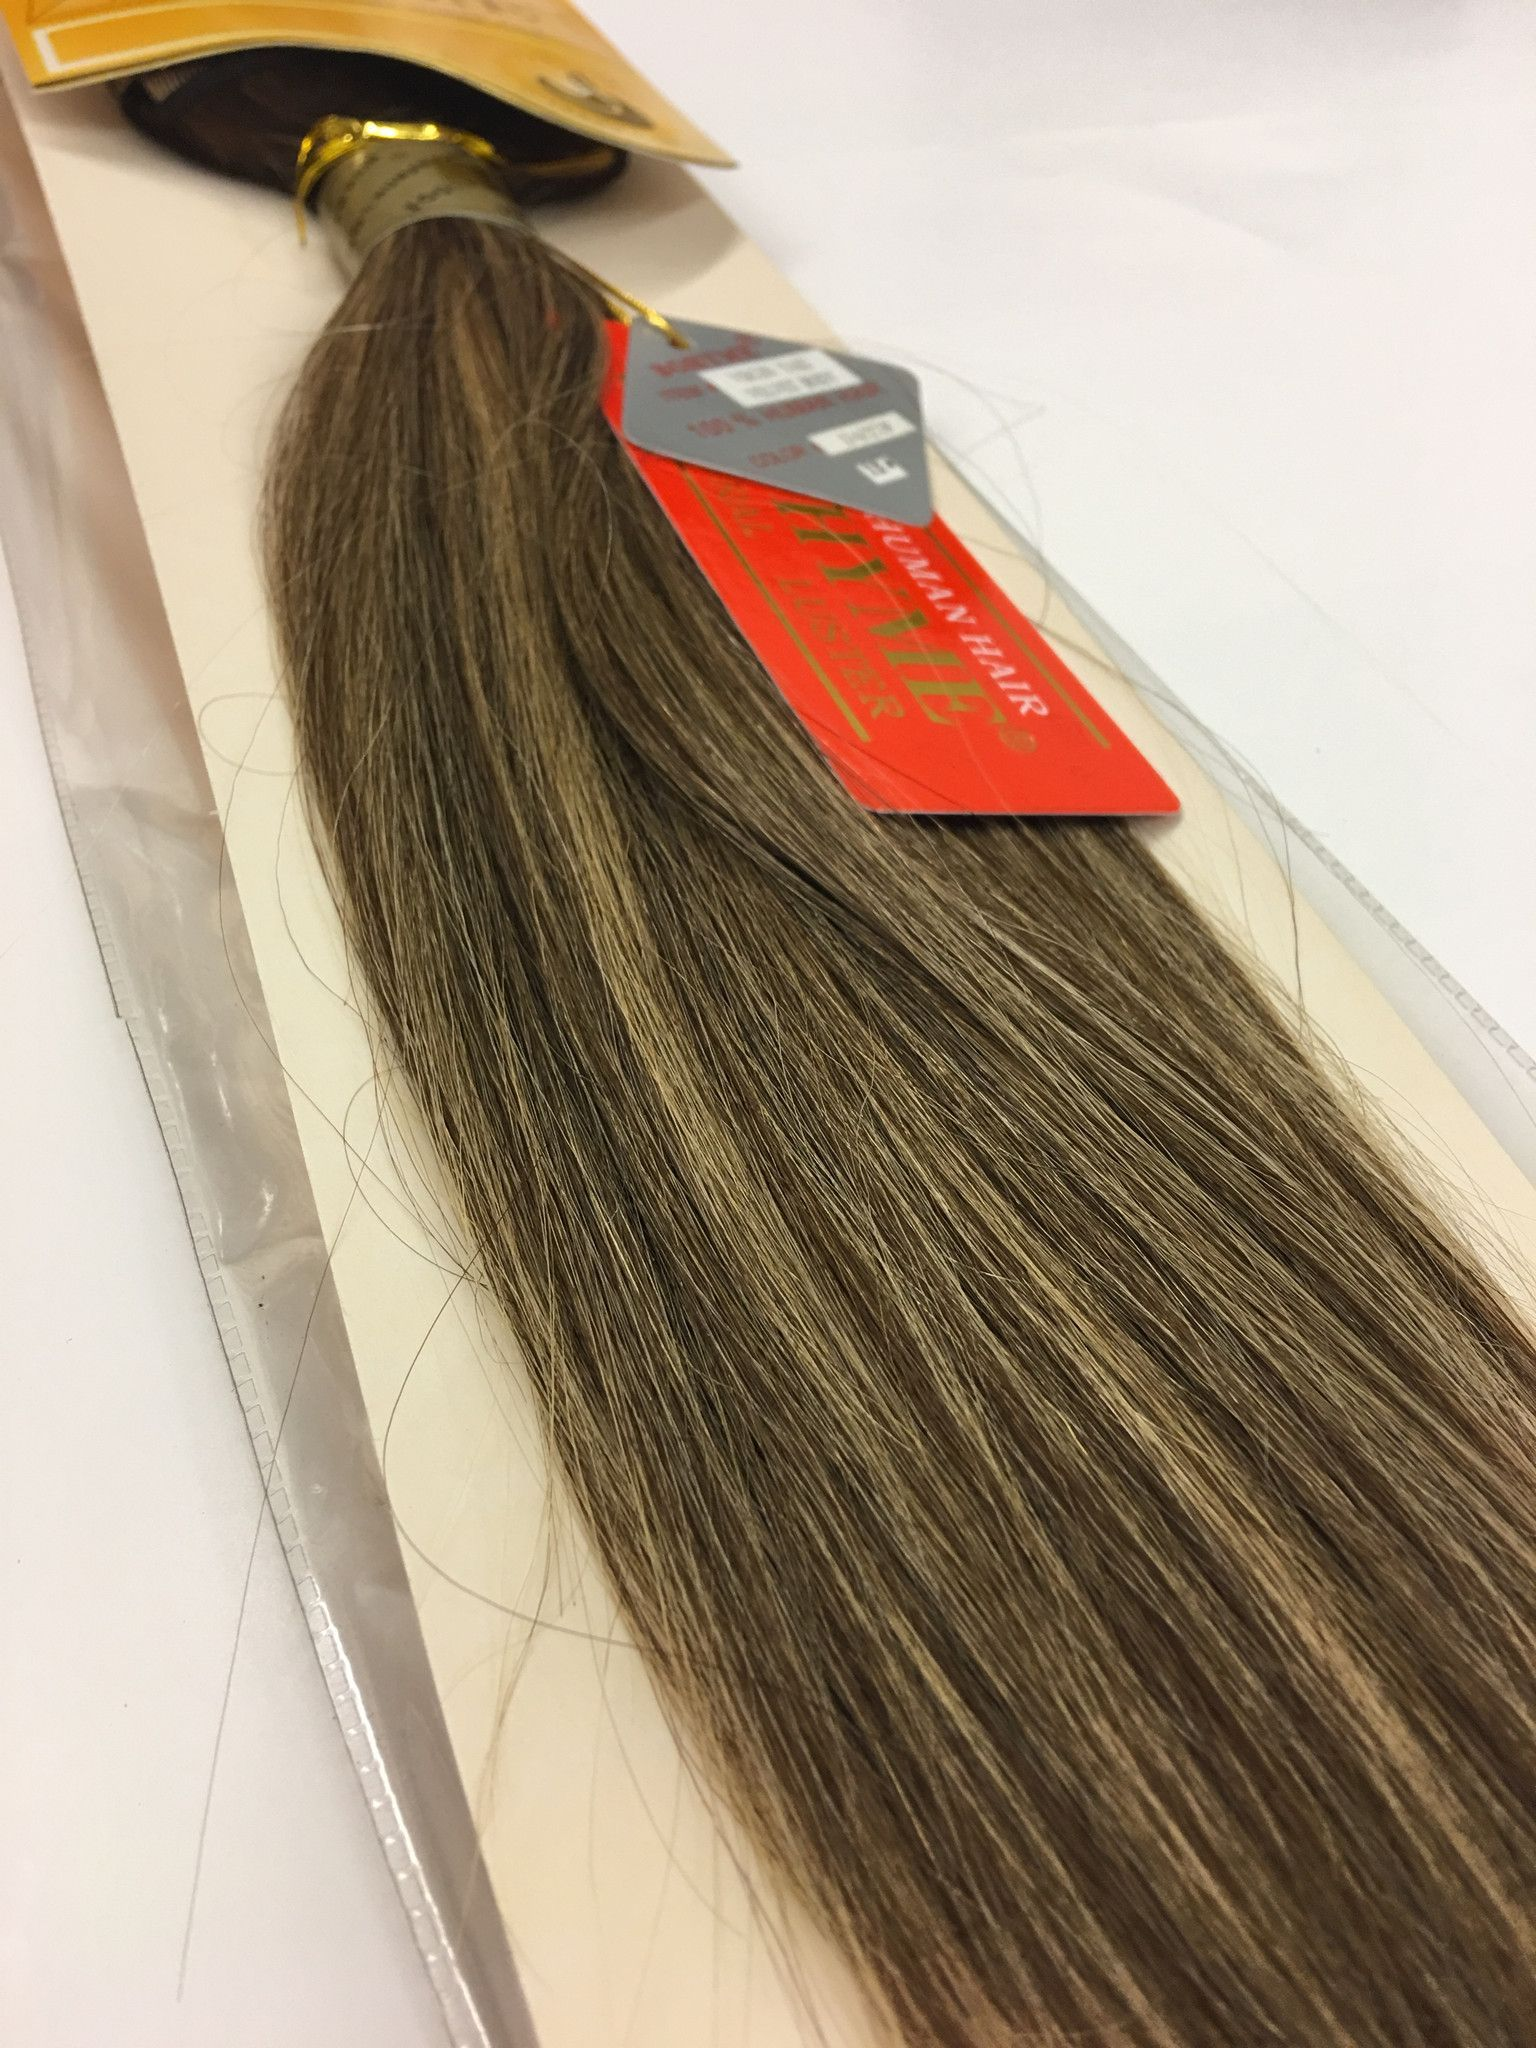 Bohyme Gold Virgin Yaki Velvet Body 100 Human Remi Hair Extensions